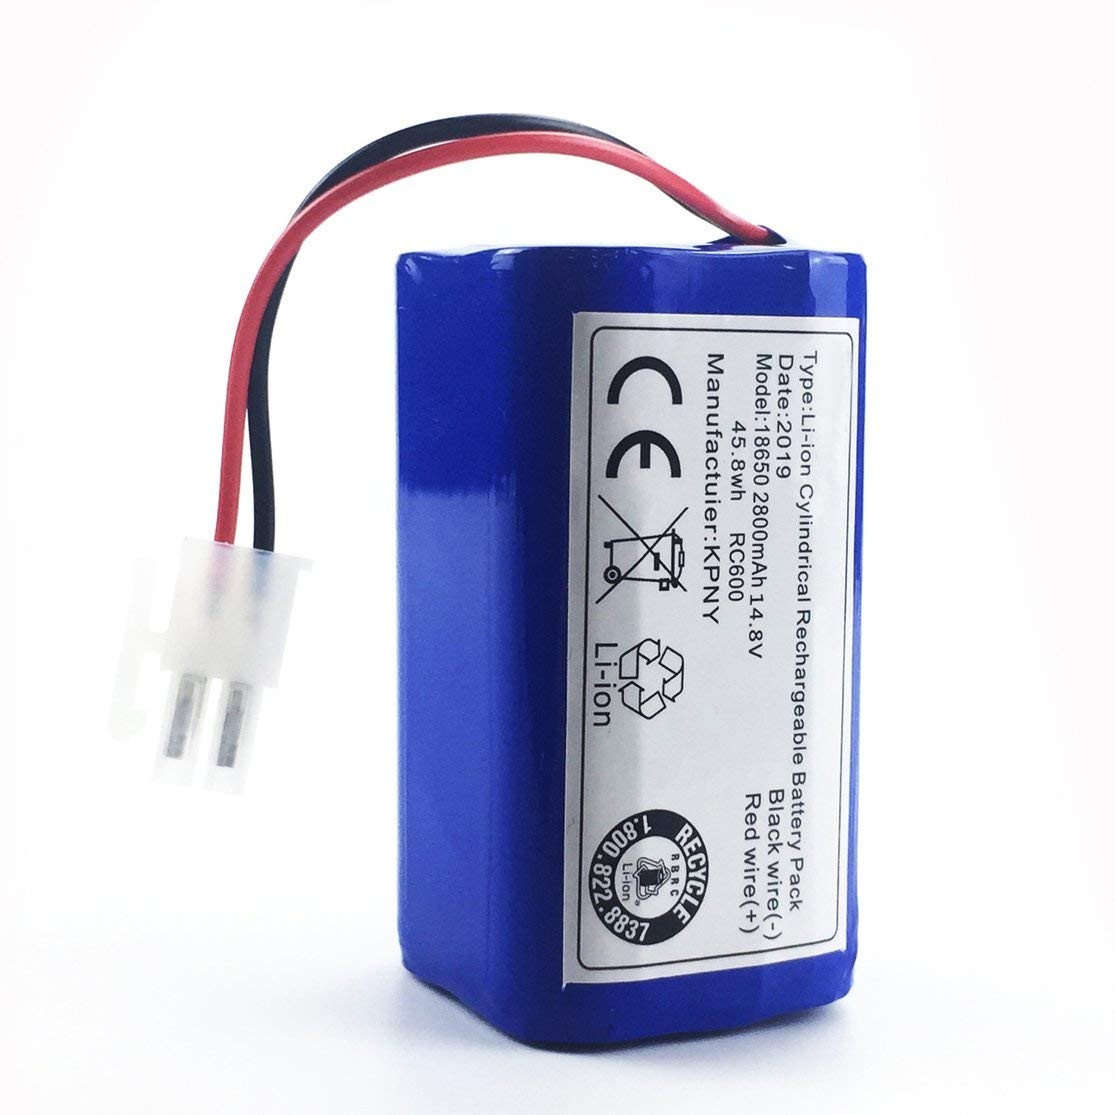 14.8 V 2800 Mah Robot Vacuum Cleaner Replacement Battery Pack For Chuwi Ilife V7 V7s Pro Robotic Sweeper by Quanna